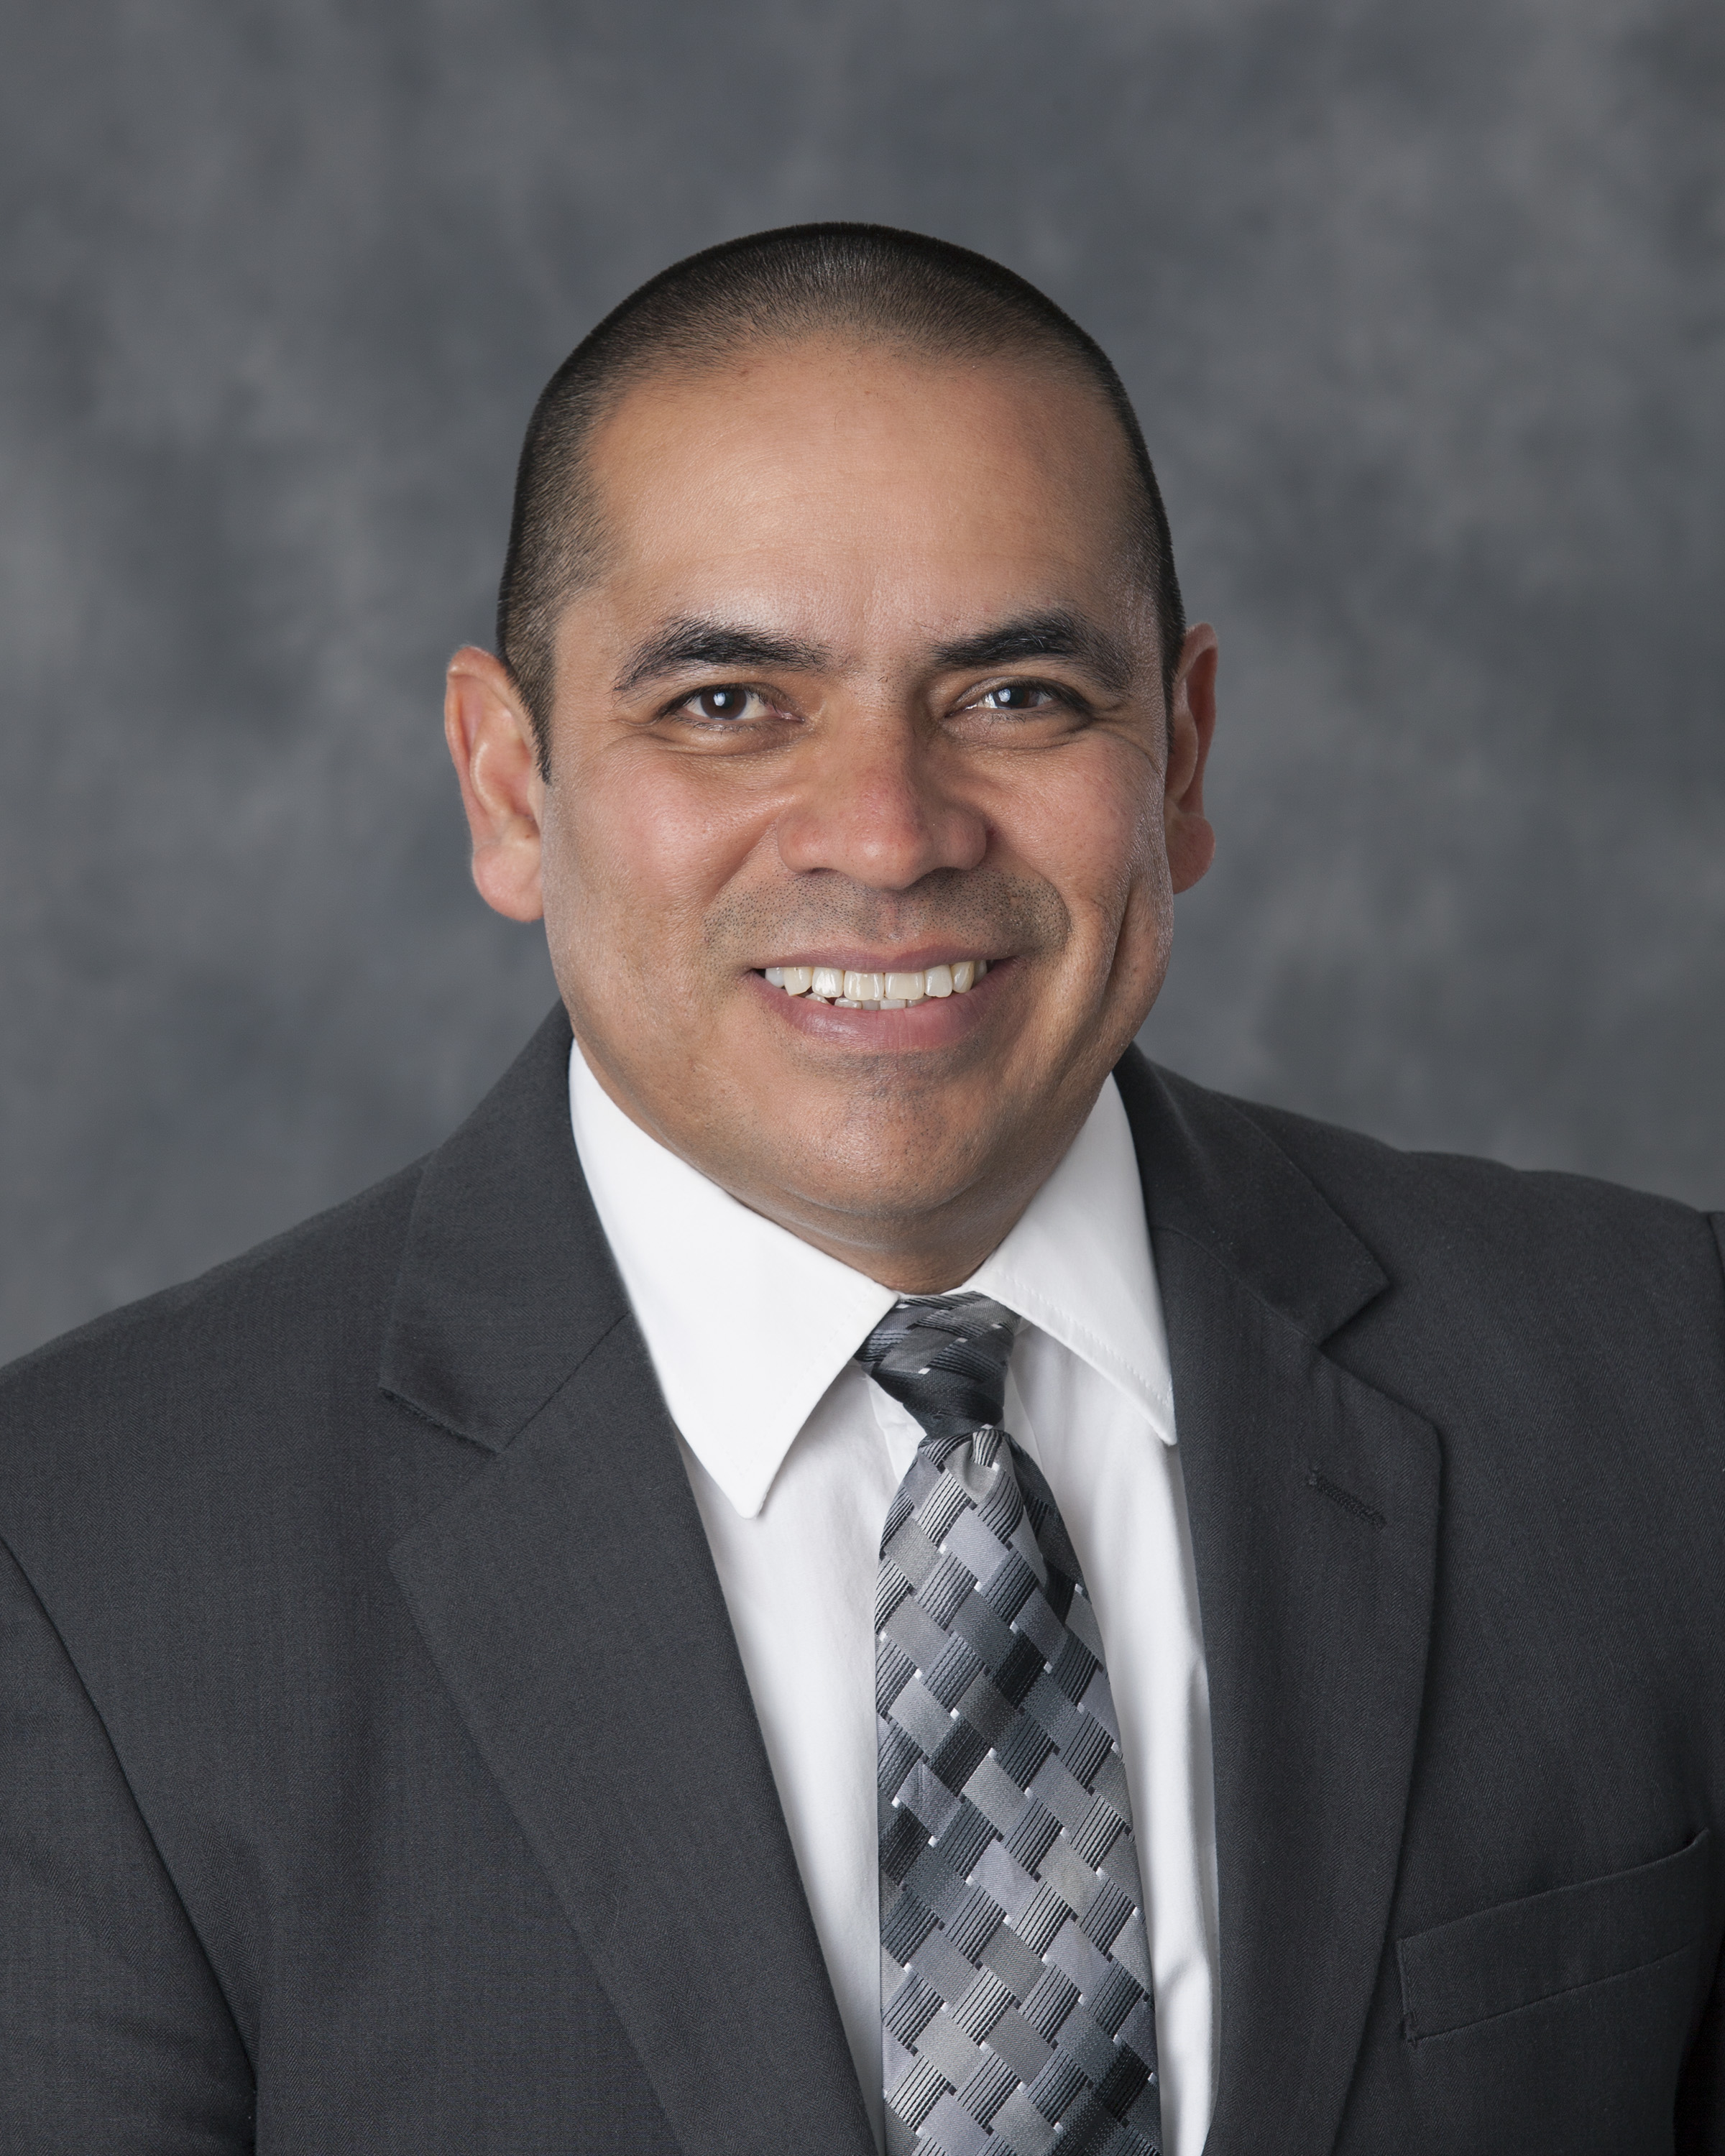 DAN OTERO, MBA, CLP, LSSBB  CHIEF EXECUTIVE OFFICER